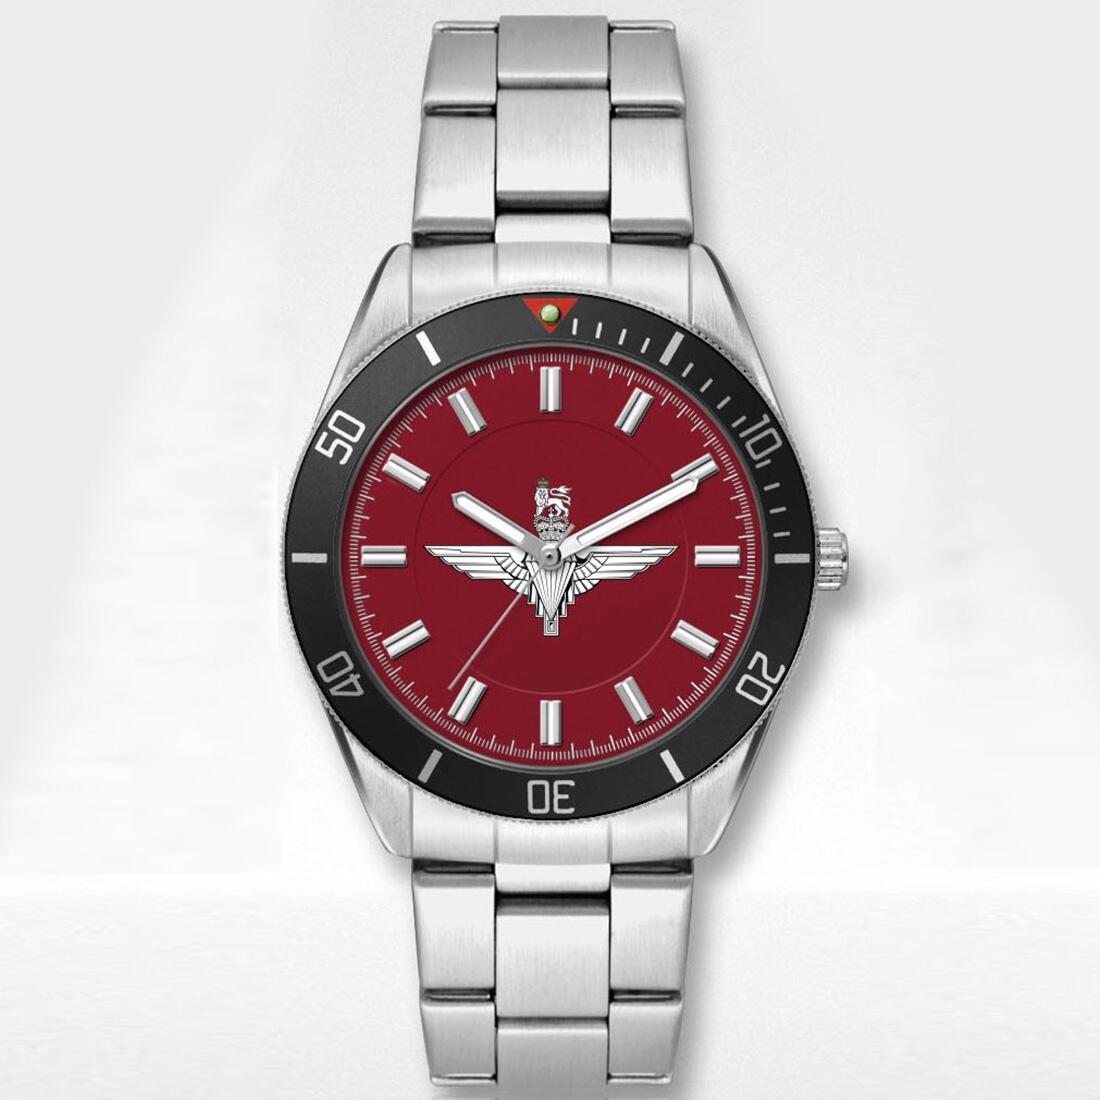 Stainless Steel Para Watch with Silvered Metal Bracelet